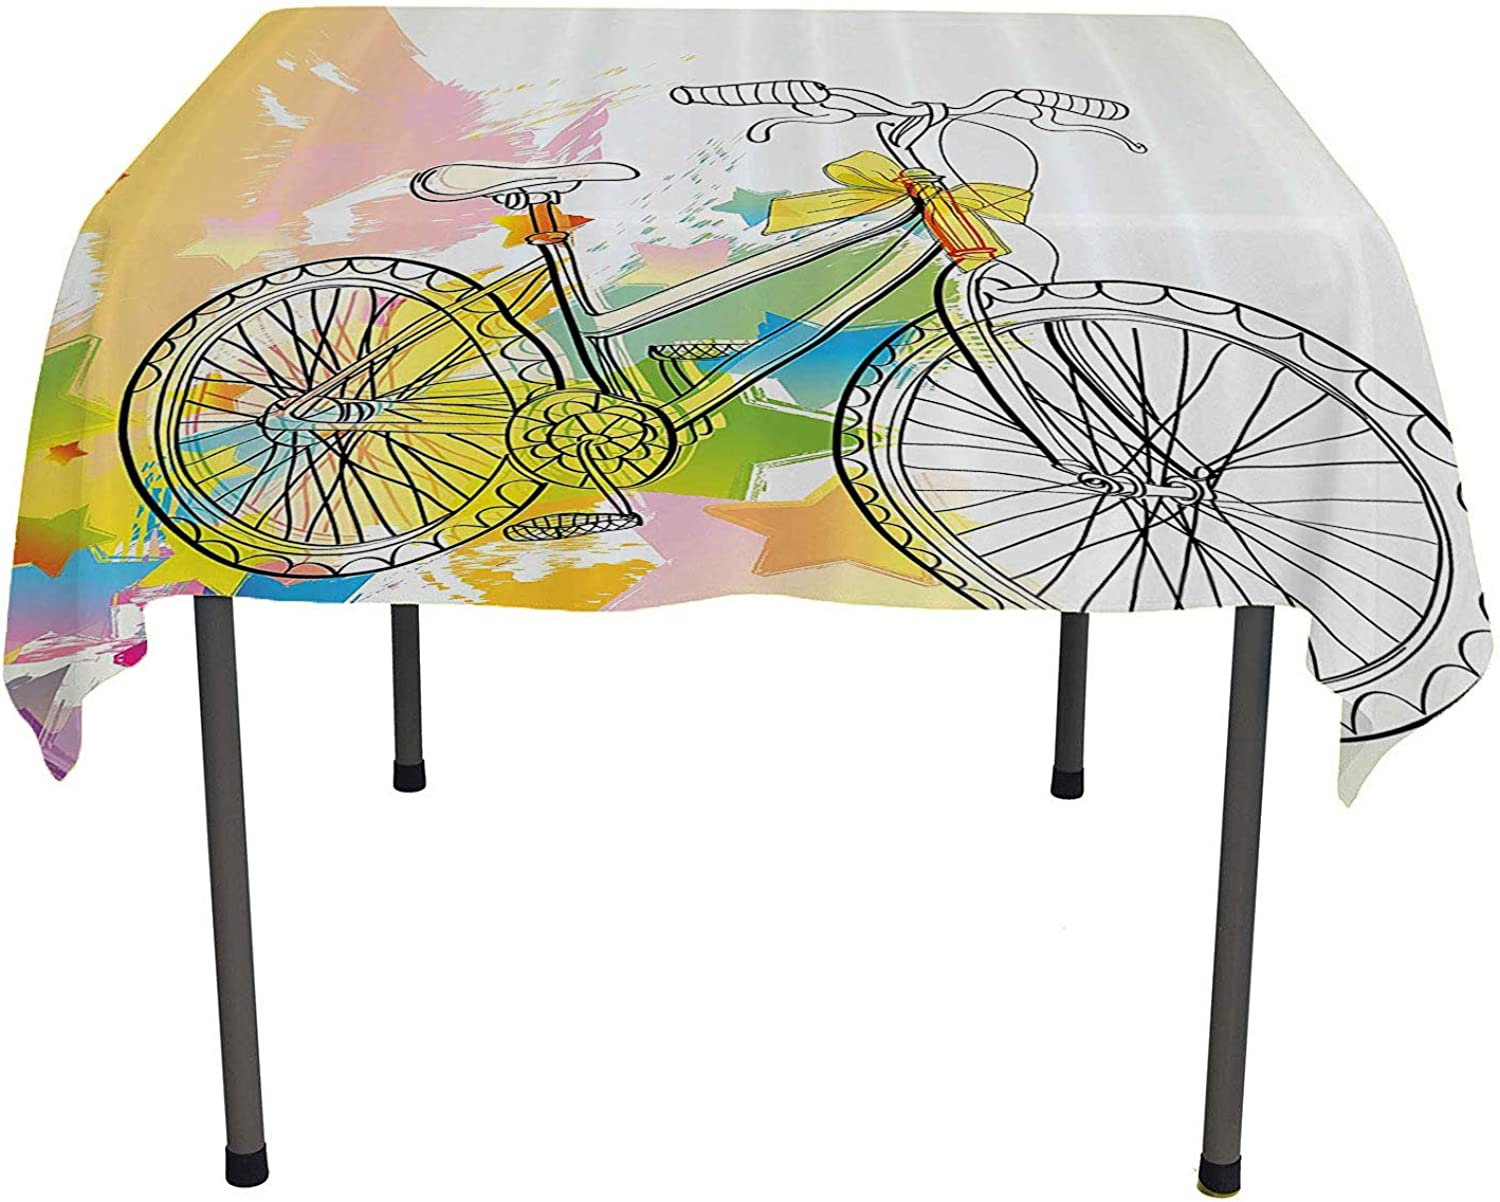 Sketchy Fabric Tablecloth Hands Drawn Image of A Bicycle Abstract colorful Pattern with Bow on a Bike Image Multicolor Outdoor Picnic Table Cloth Washable Spring Summer Party Picnic 50 by 80